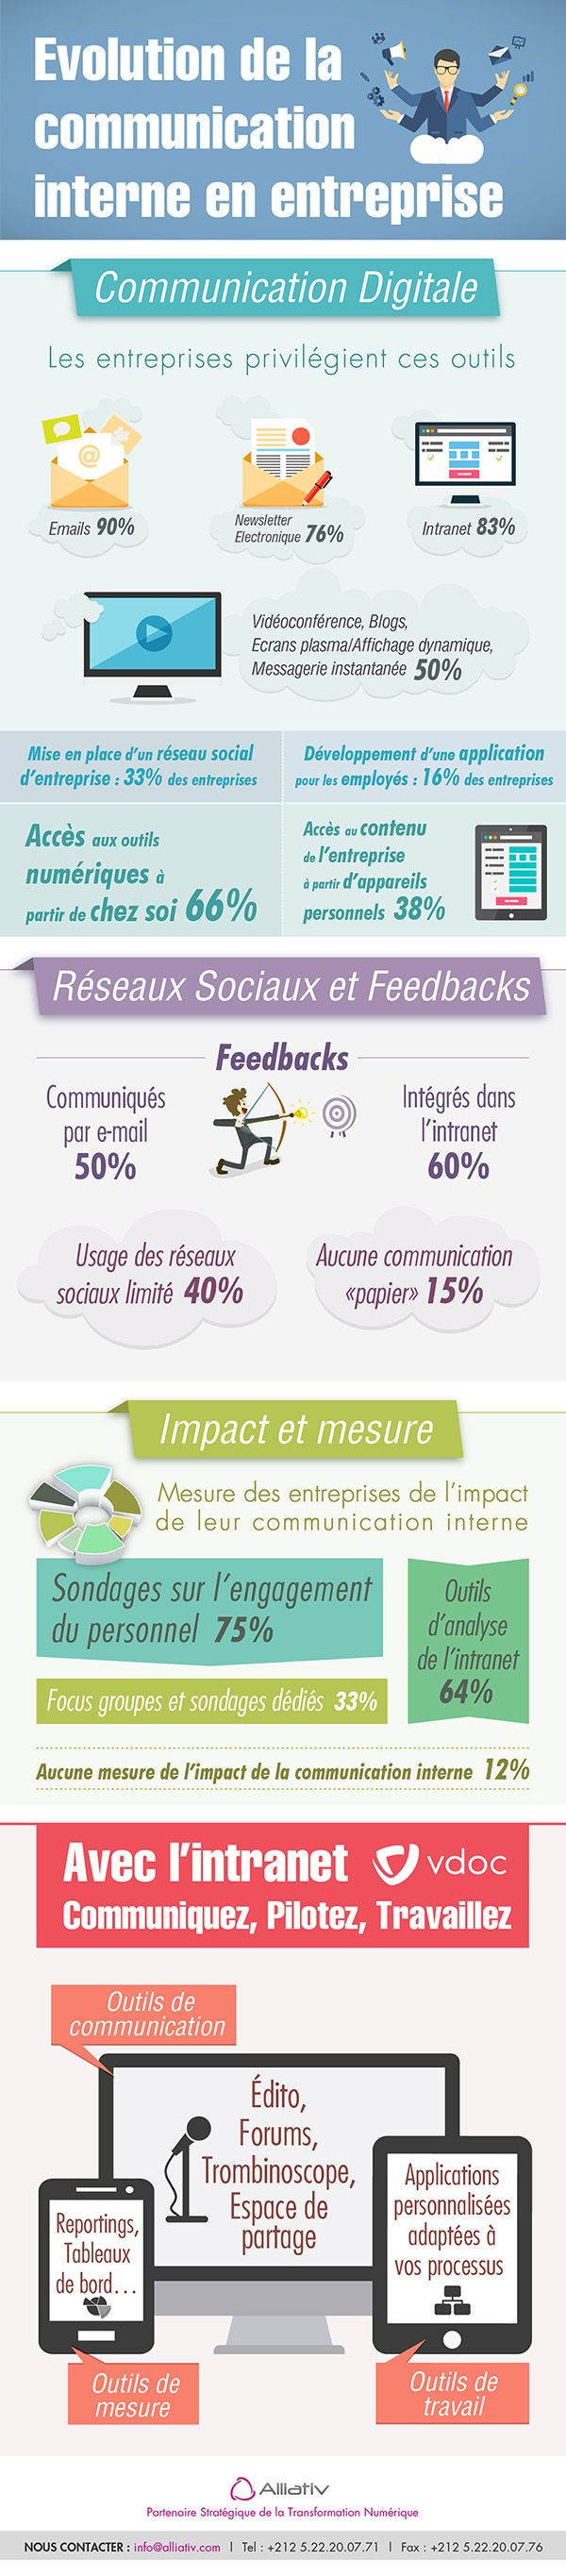 Evolution de la Communication Interne #Infographie #infographic #infografía